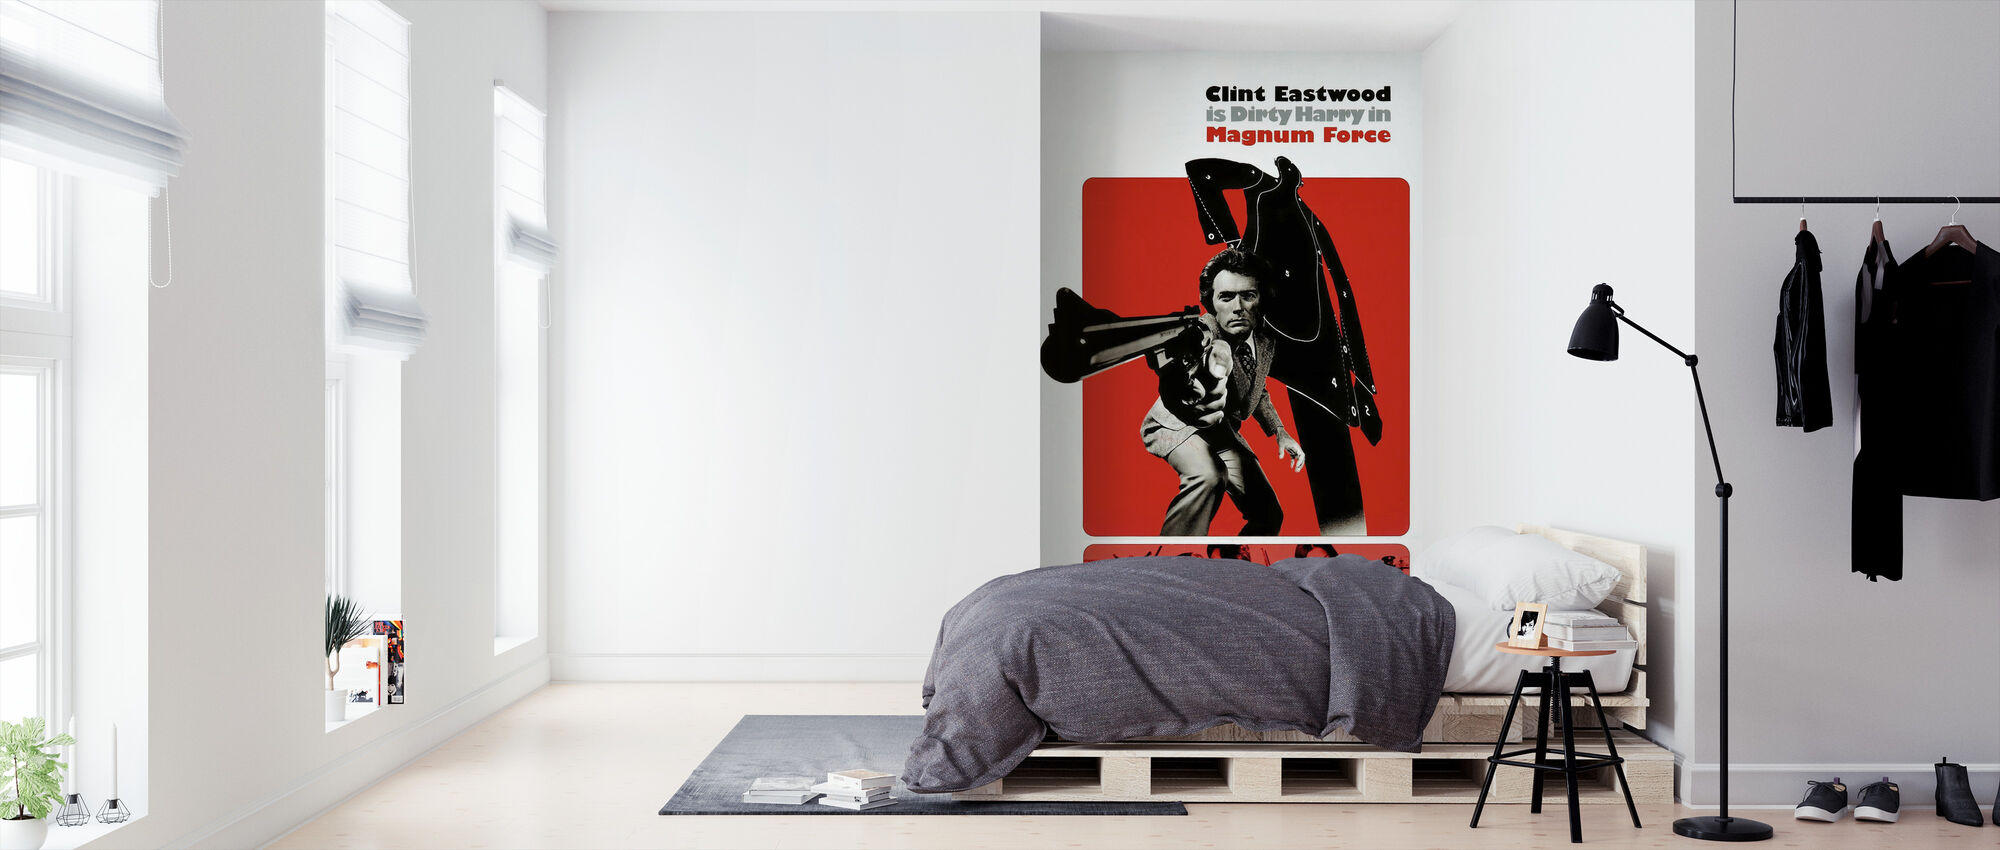 Magnum Force - Clint Eastwood - Wallpaper - Bedroom